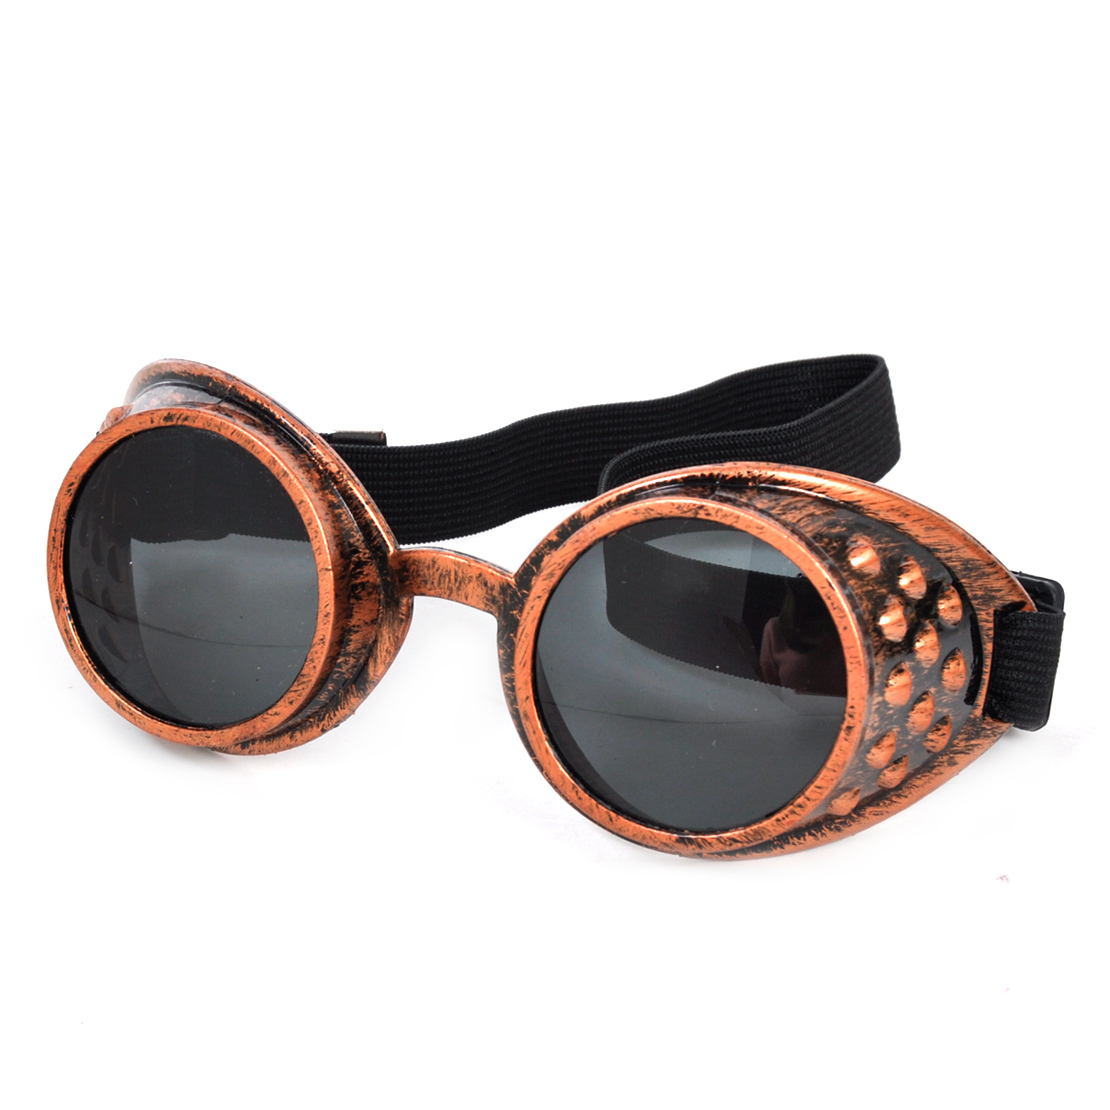 M: Under 25 - Swimwear / Swimming: Sports & Outdoors Trendz n fashion goggles